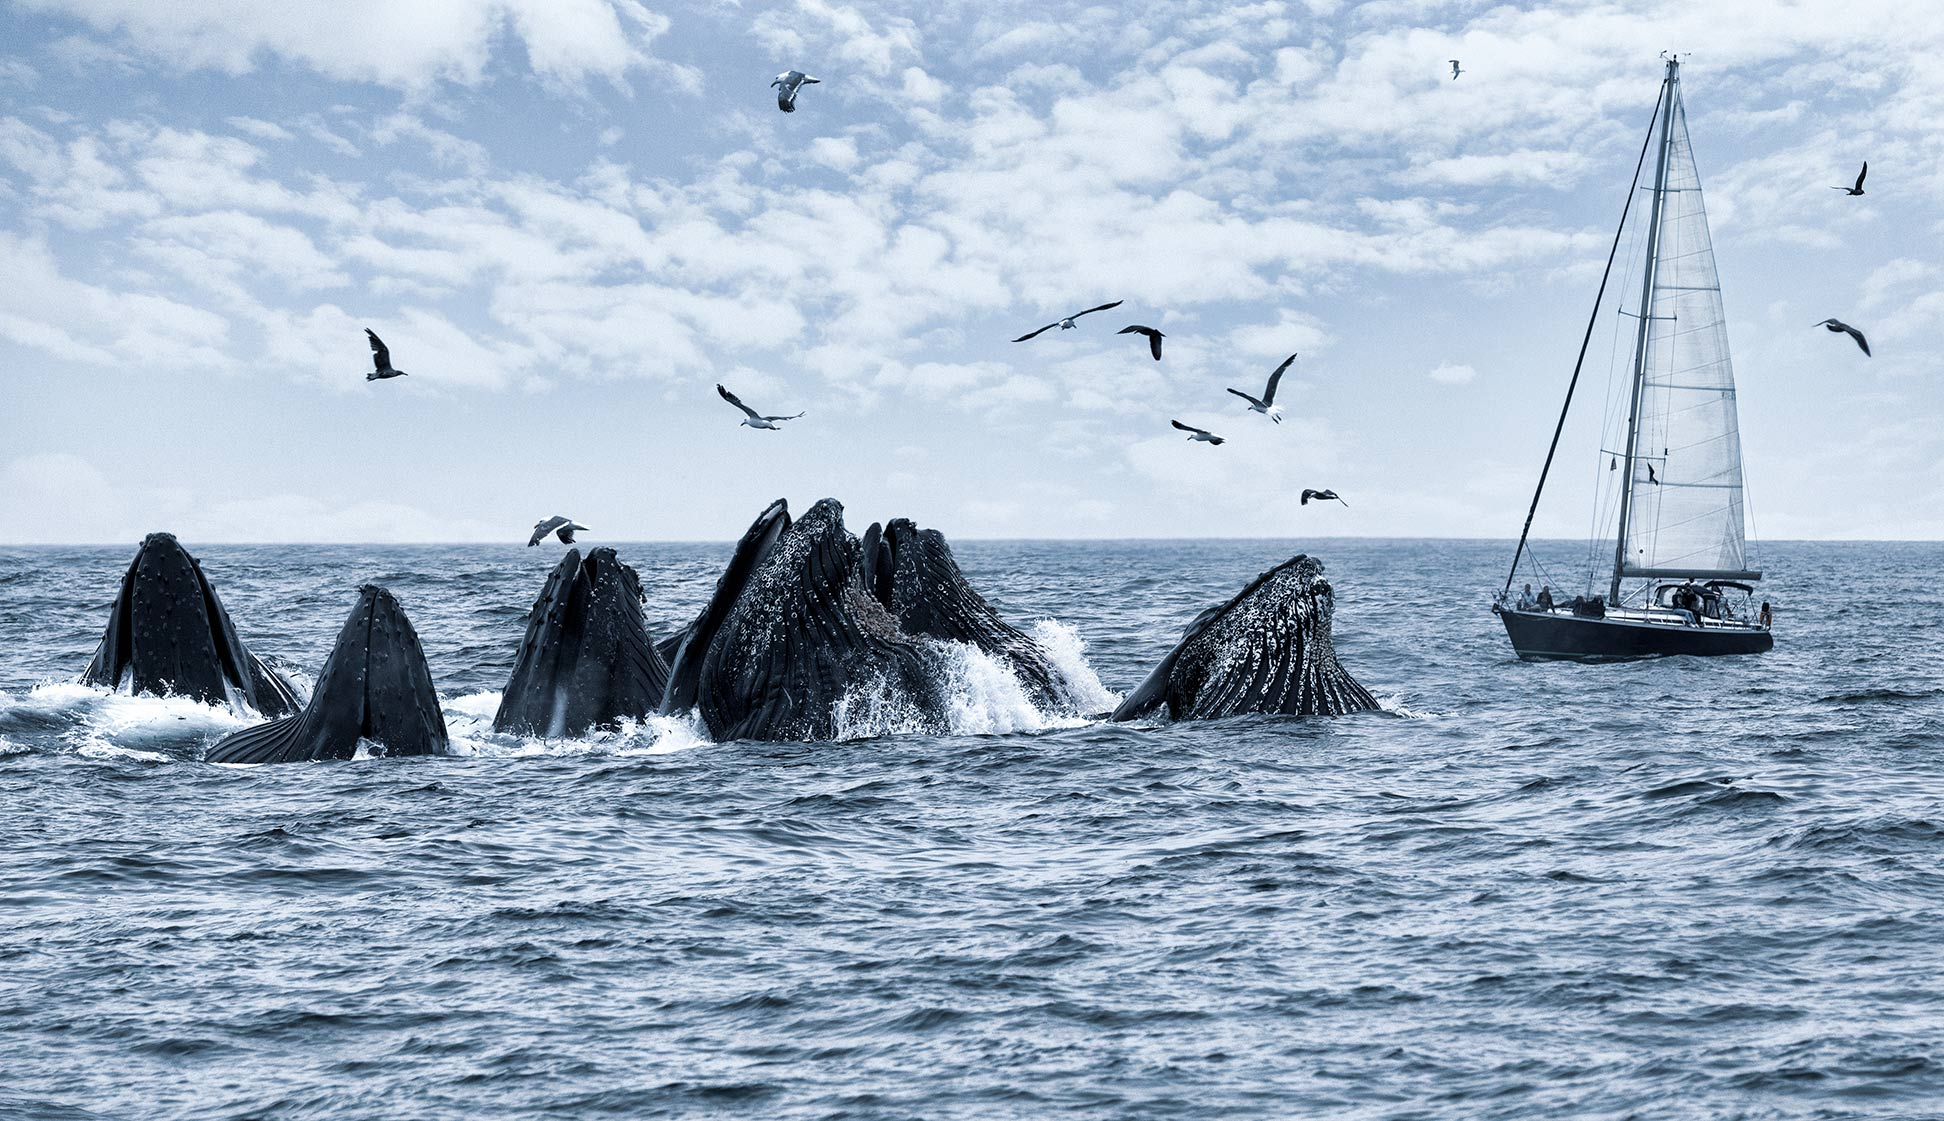 Humpback-whales-feeding-in-front-of-a-sailboat_Monterey-Bay_CA_